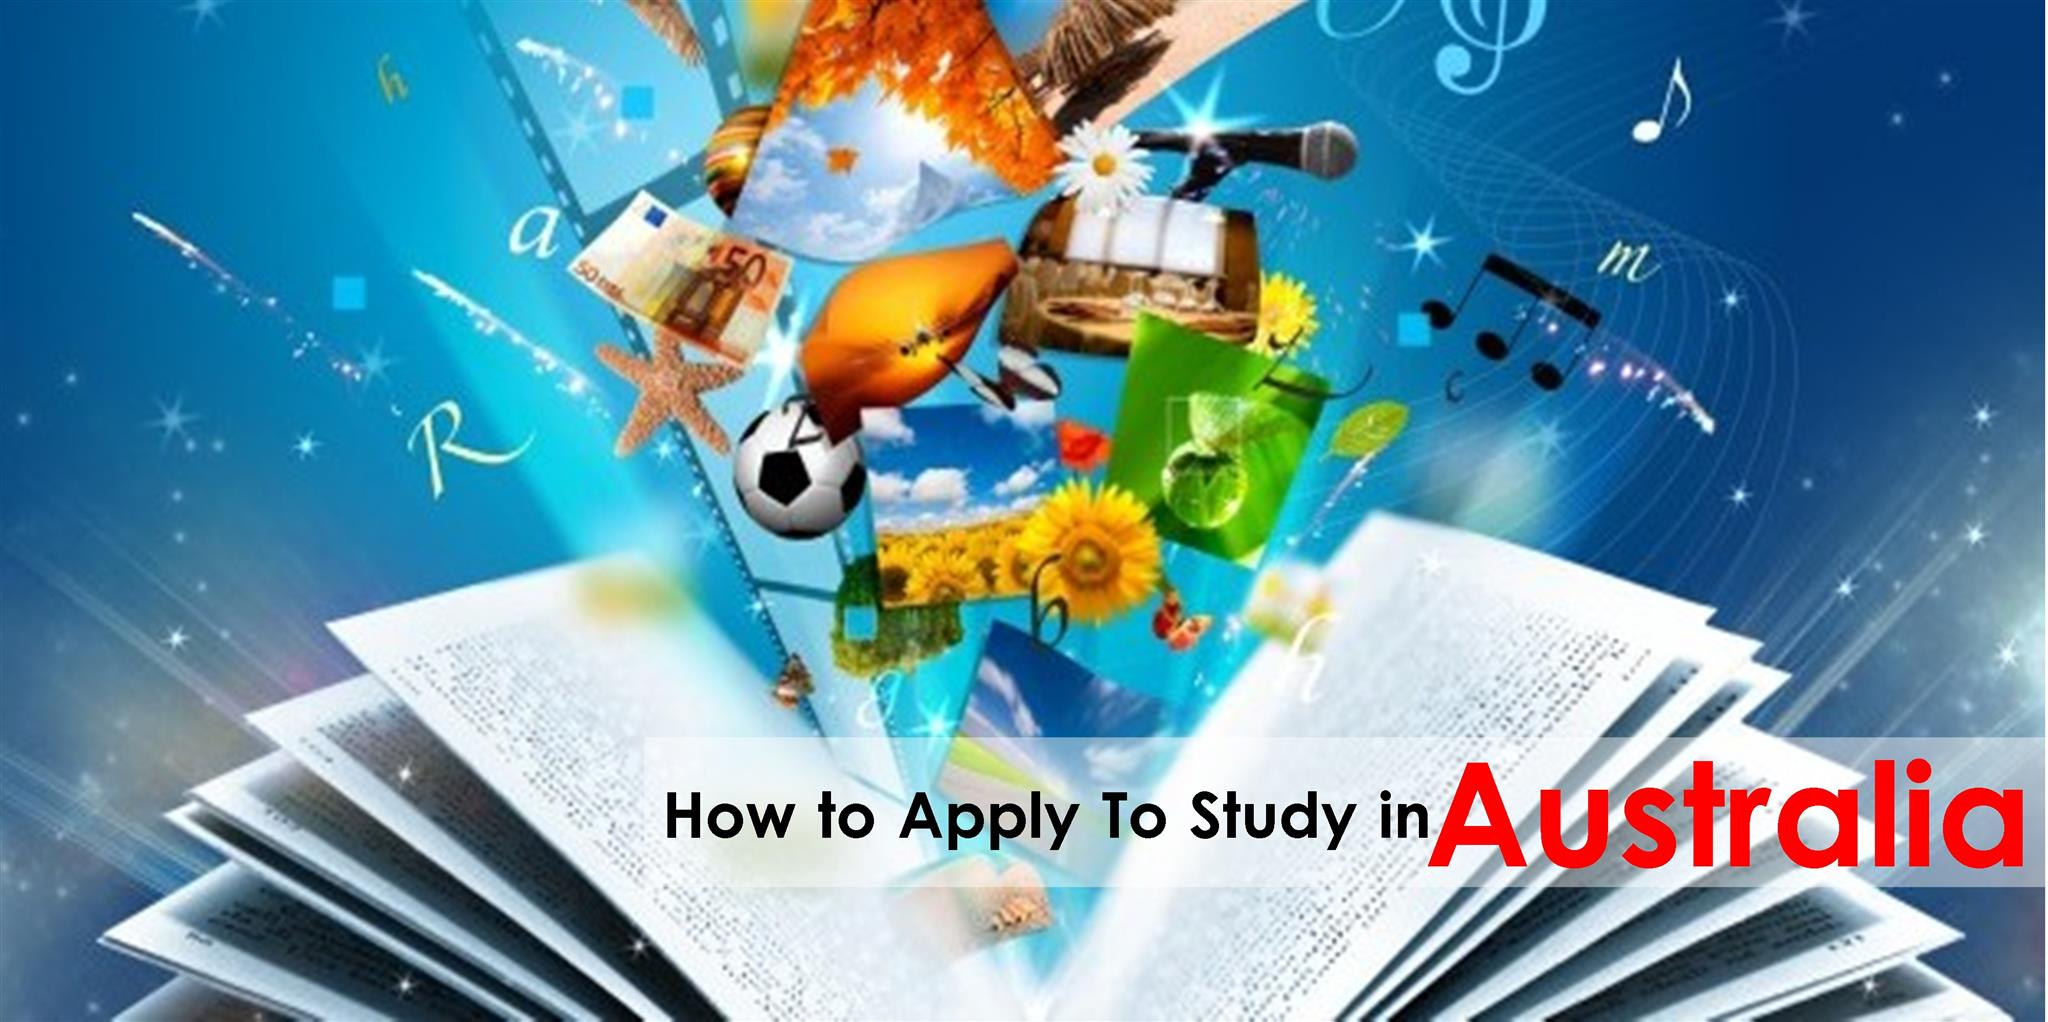 How to Apply To Study in Australia